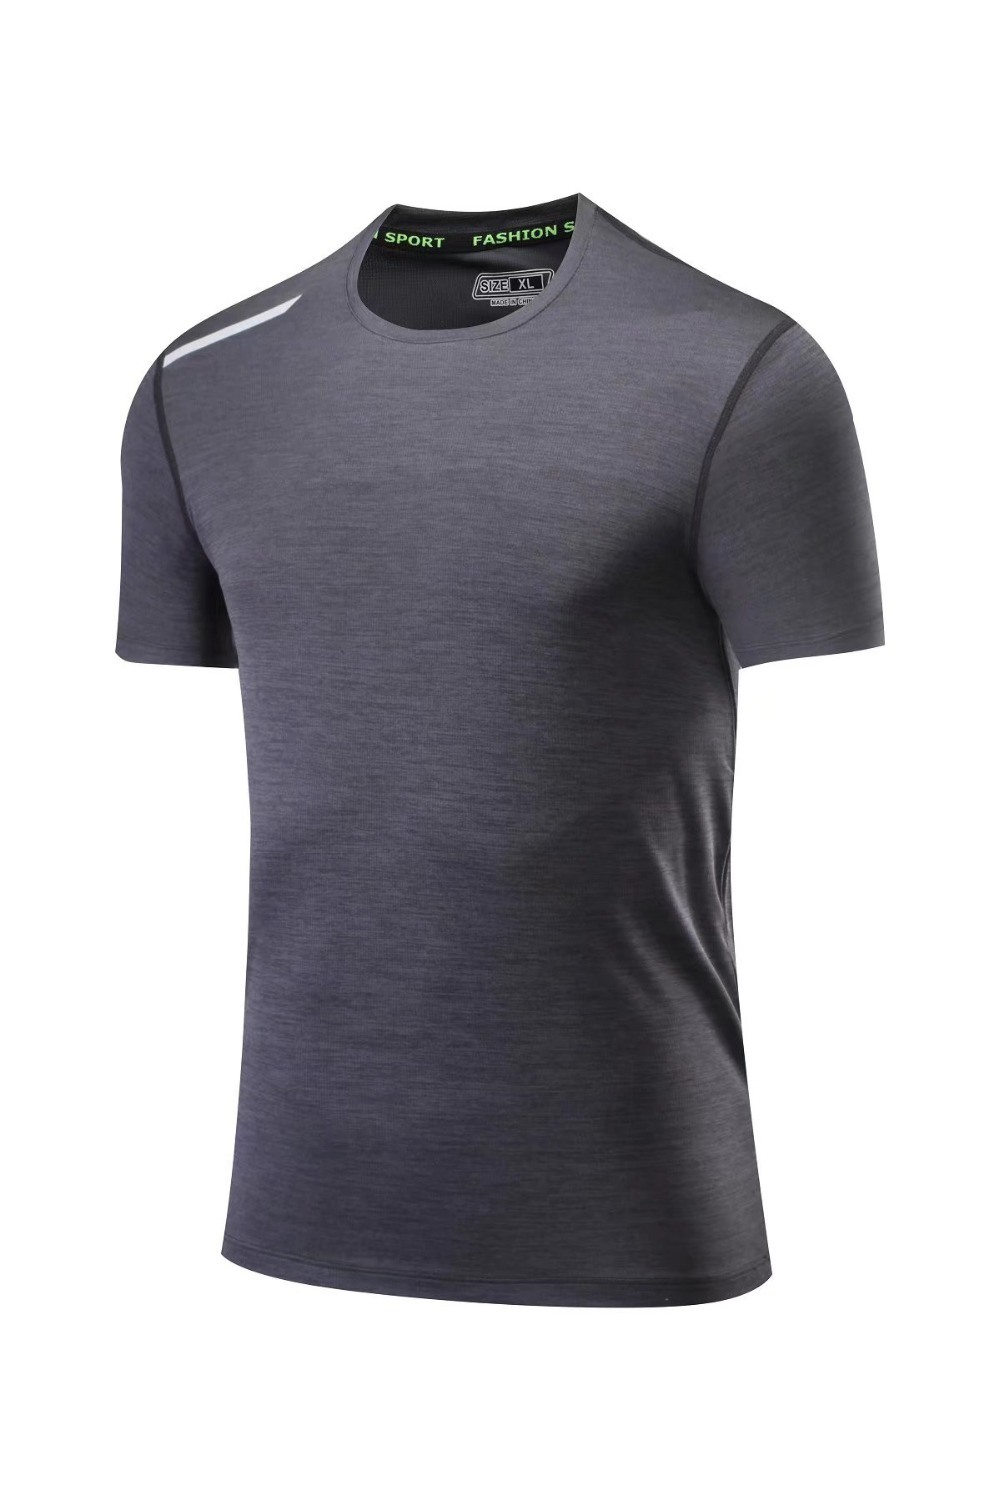 China Quick Dry Mesh T Shirts Casual Man O Neck Dry Fit Tshirt